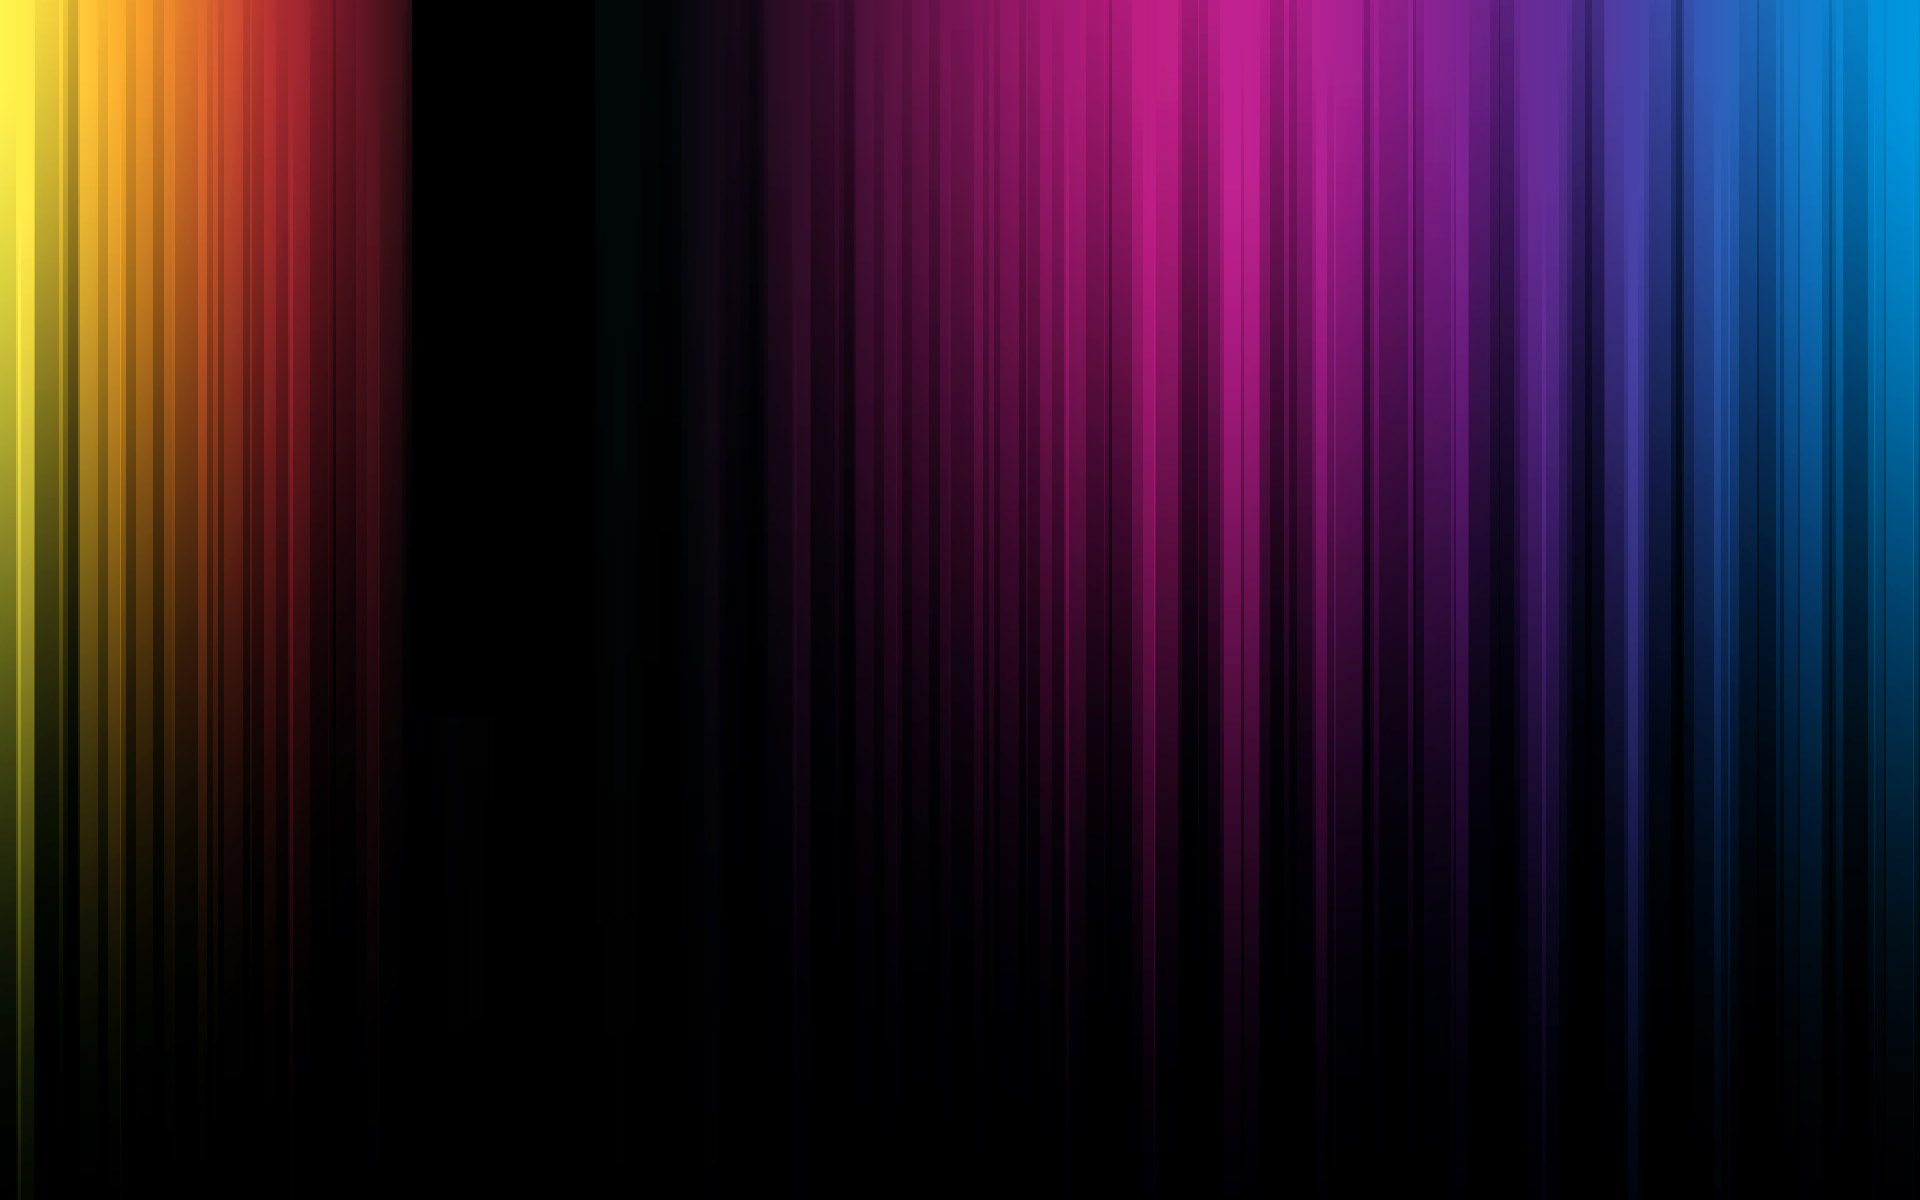 Colorful high-resolution background 25298